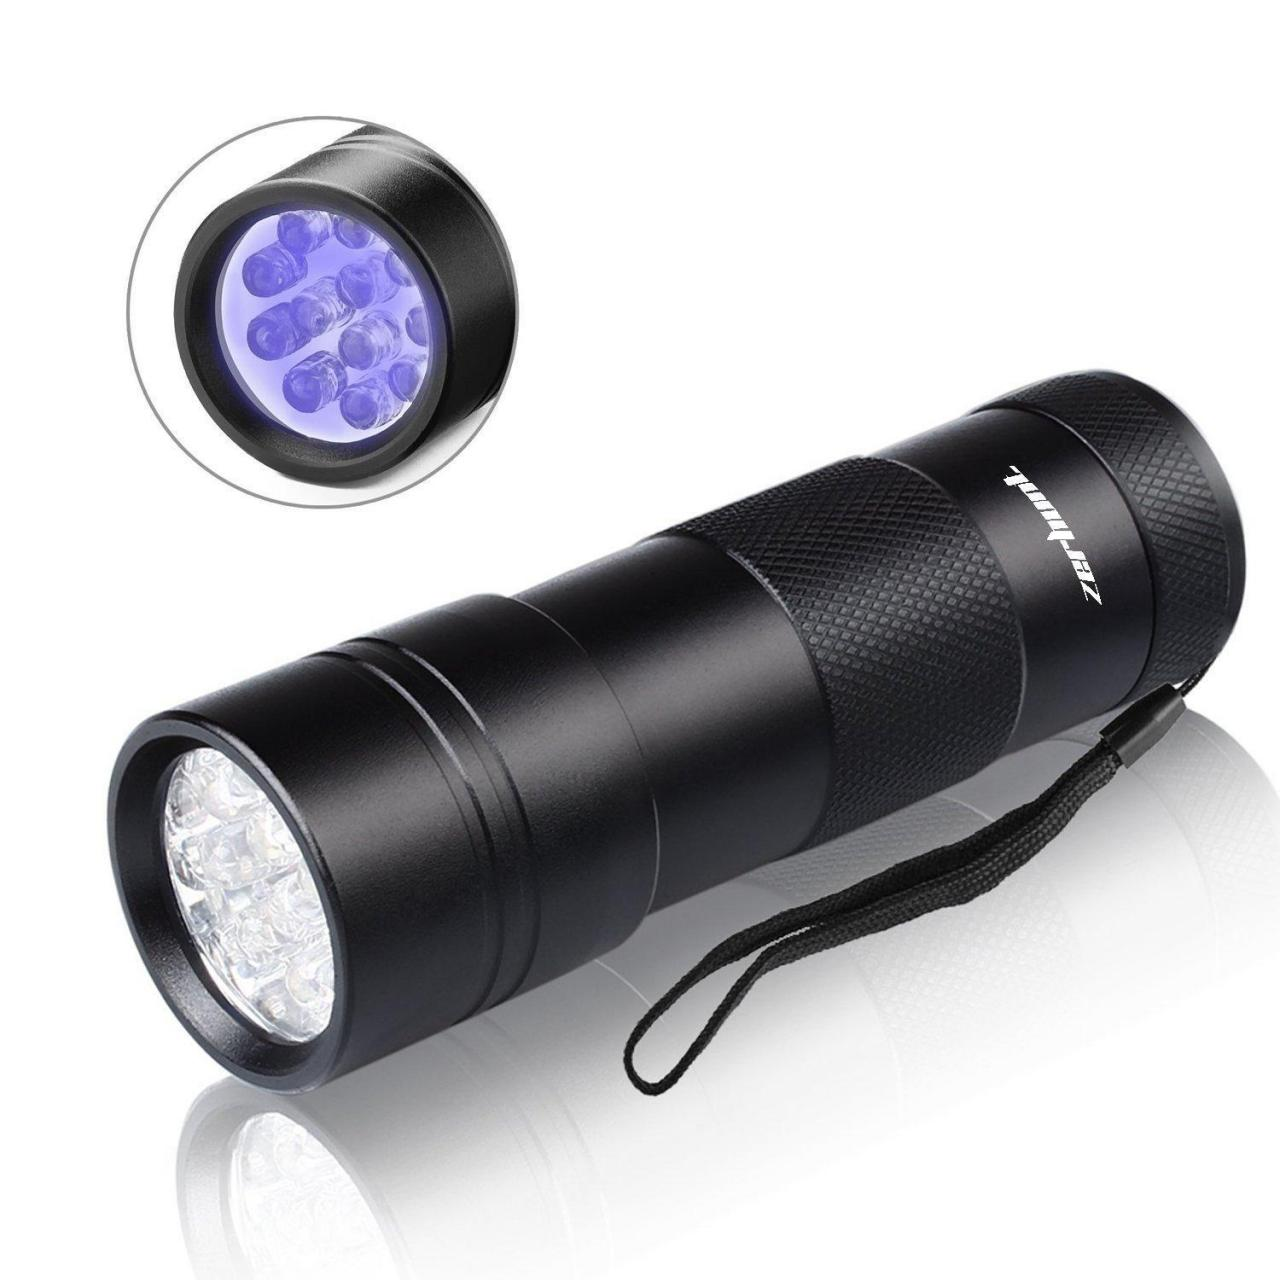 Buy cheap Zerhunt UV Flashlight Blacklight, Dog Urine and Stains Detec from wholesalers